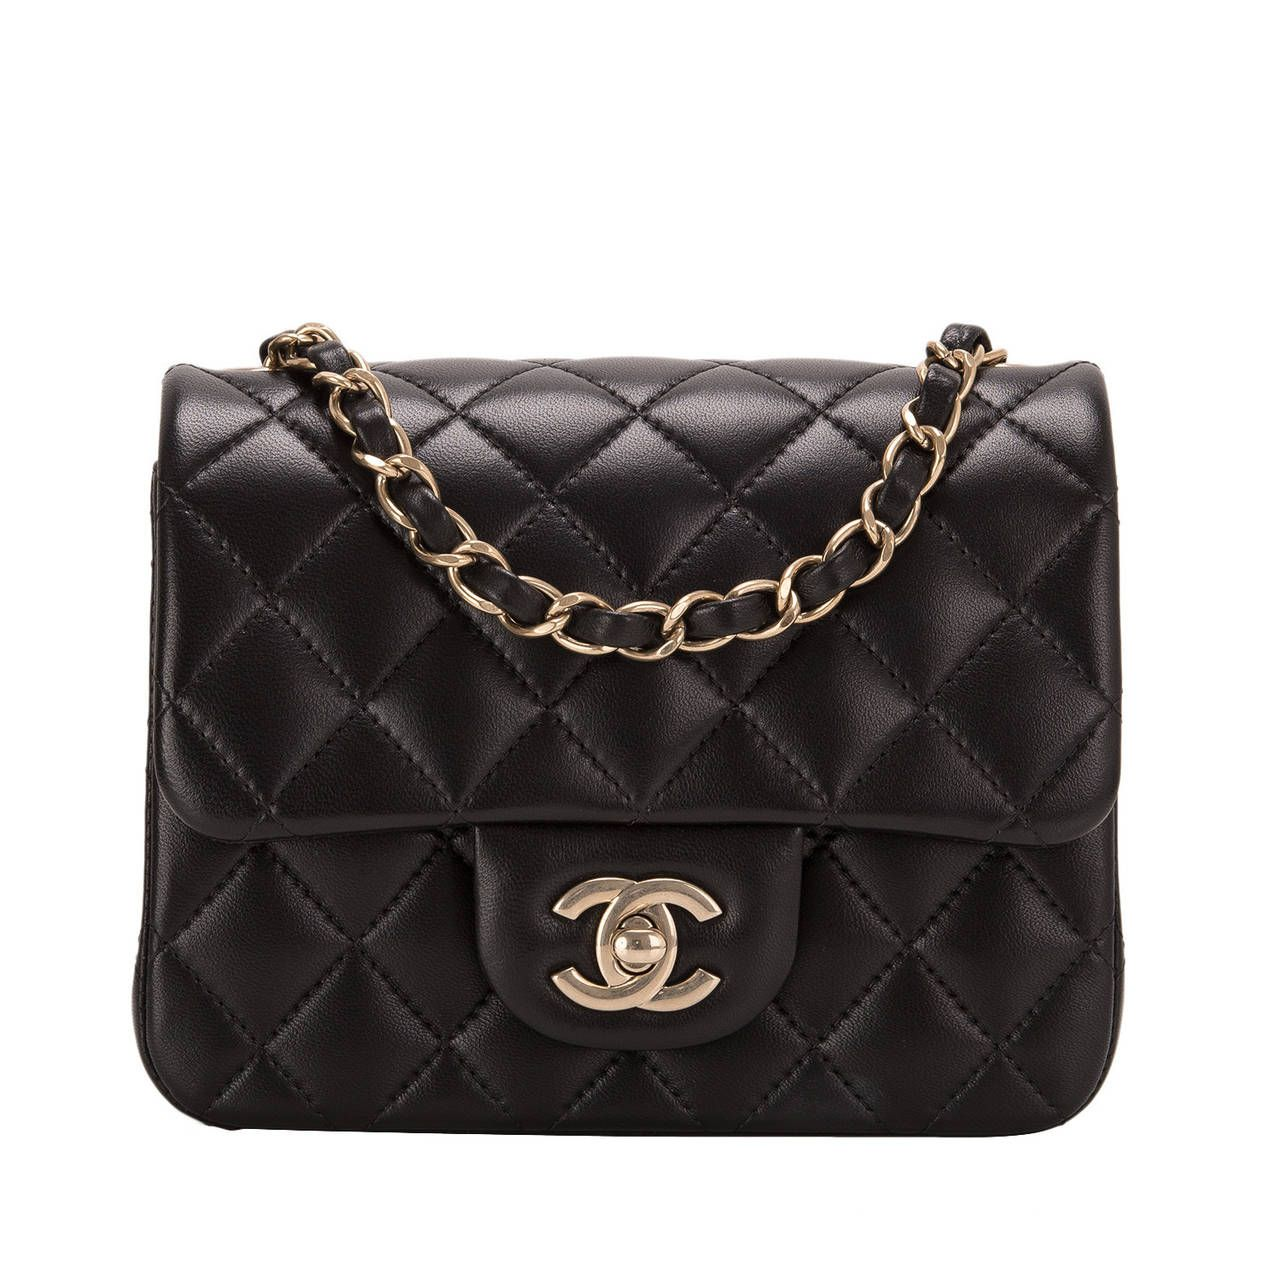 d2ec6dcc21149d Chanel Black Quilted Lambskin Square Mini Classic Flap Bag | From a  collection of rare vintage